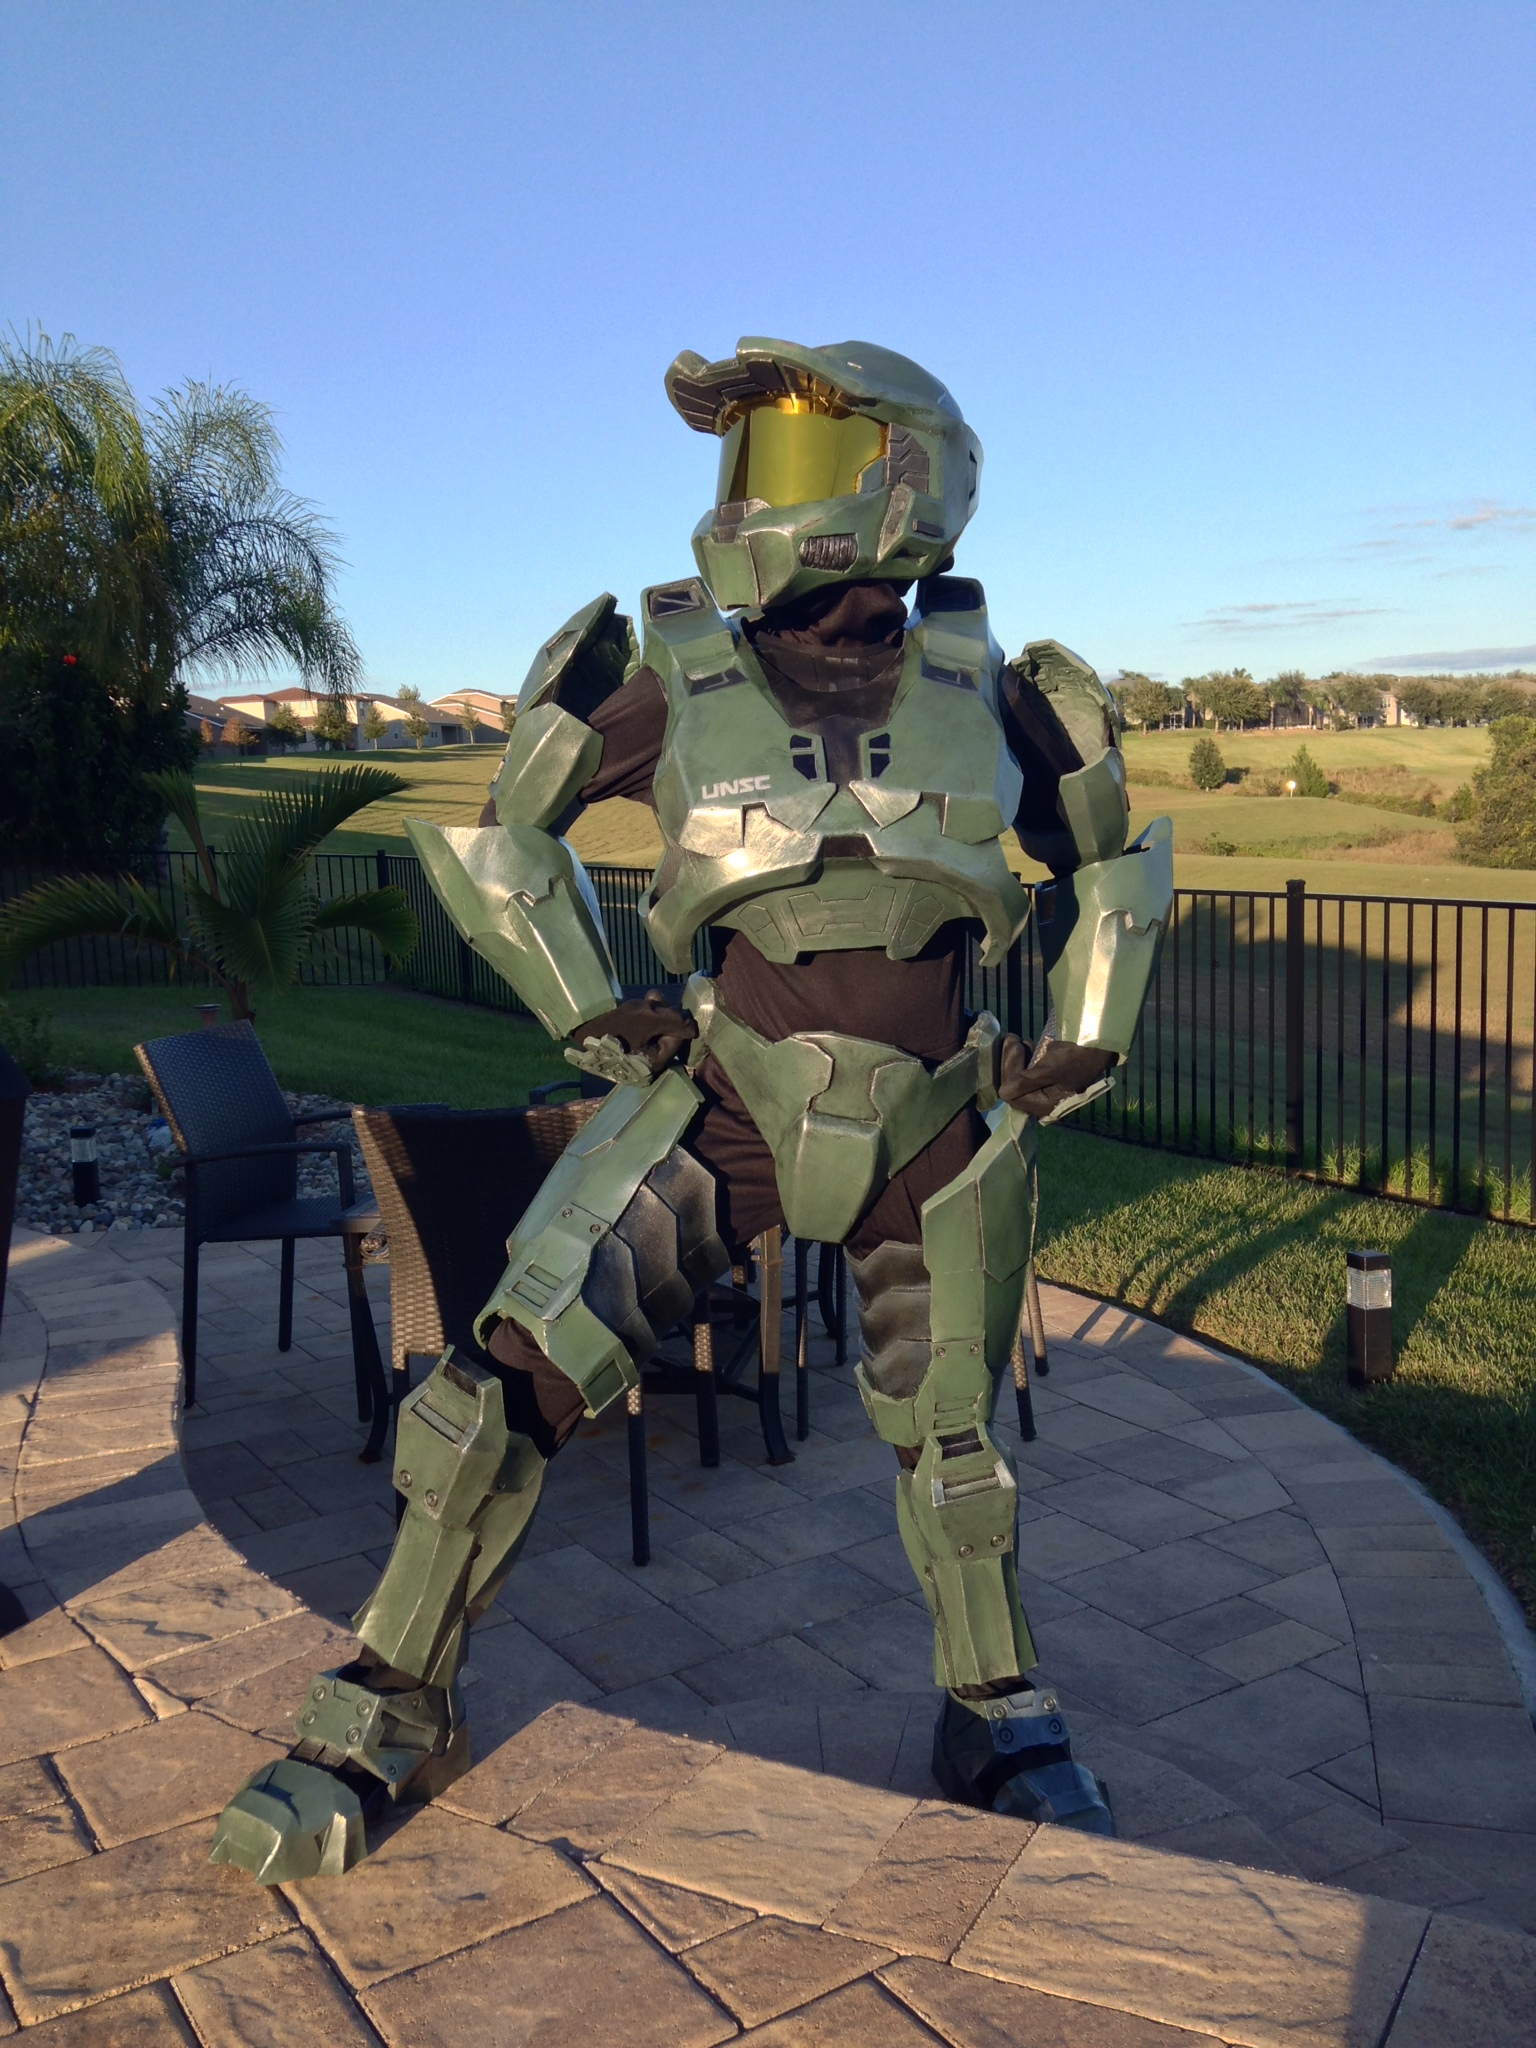 Mitcheg1's Master Chief